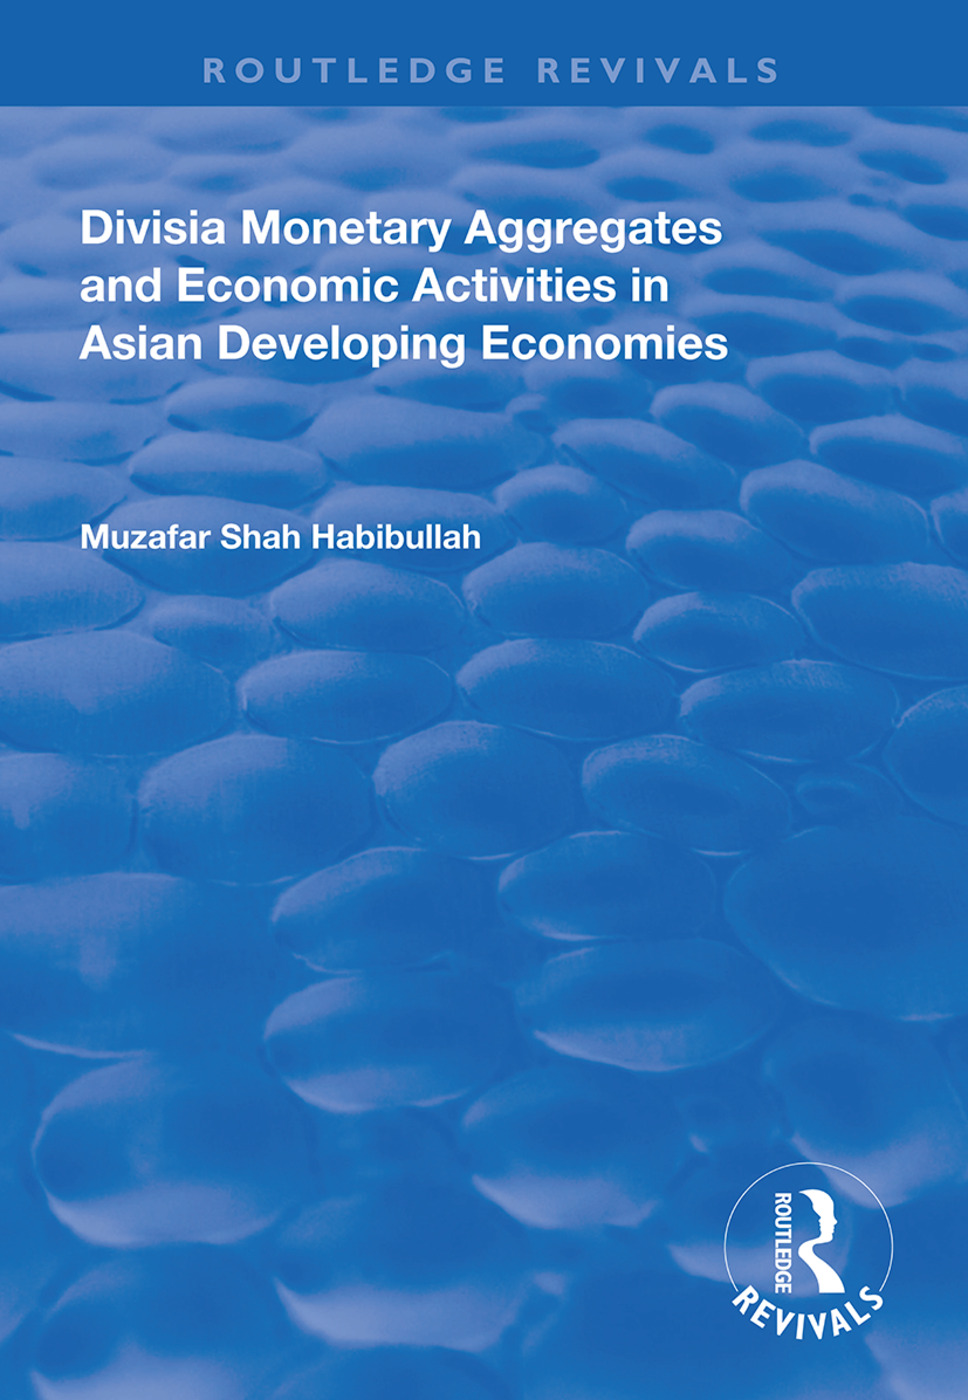 Divisia Monetary Aggregates and Economic Activities in Asian Developing Economies book cover